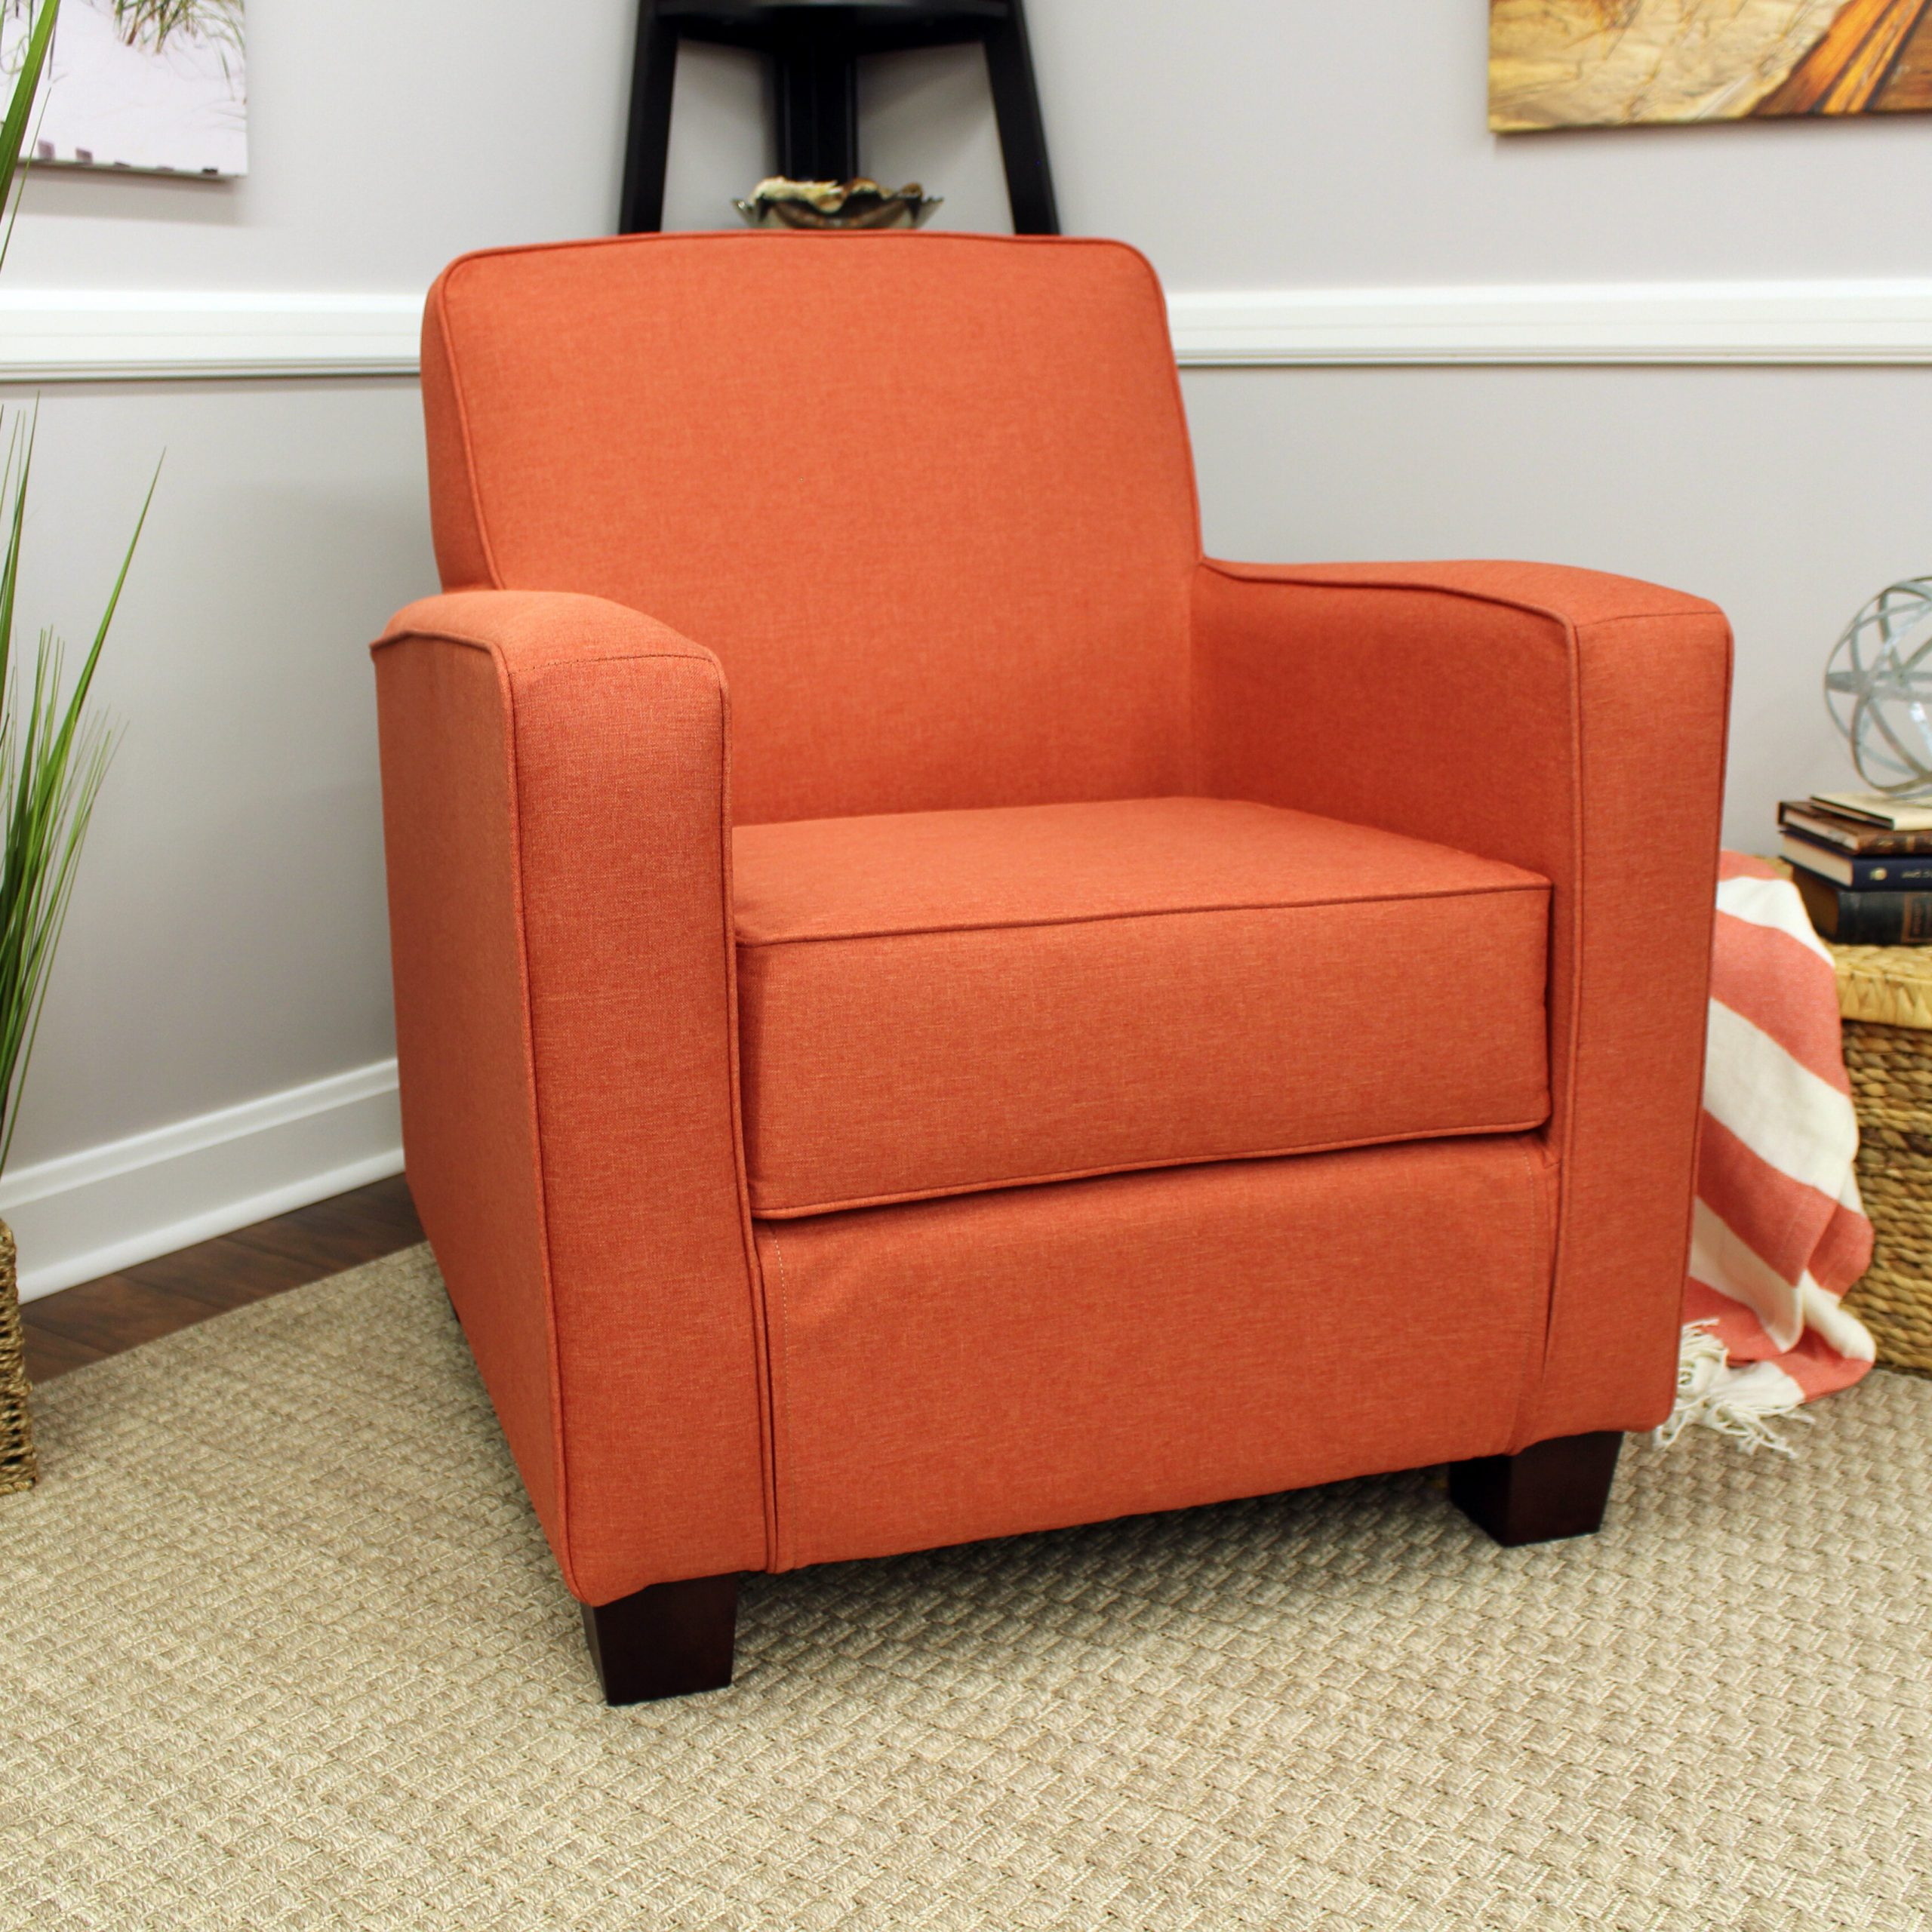 Best And Newest Artressia Barrel Chairs For Brown Orange Accent Chairs You'll Love In (View 15 of 20)